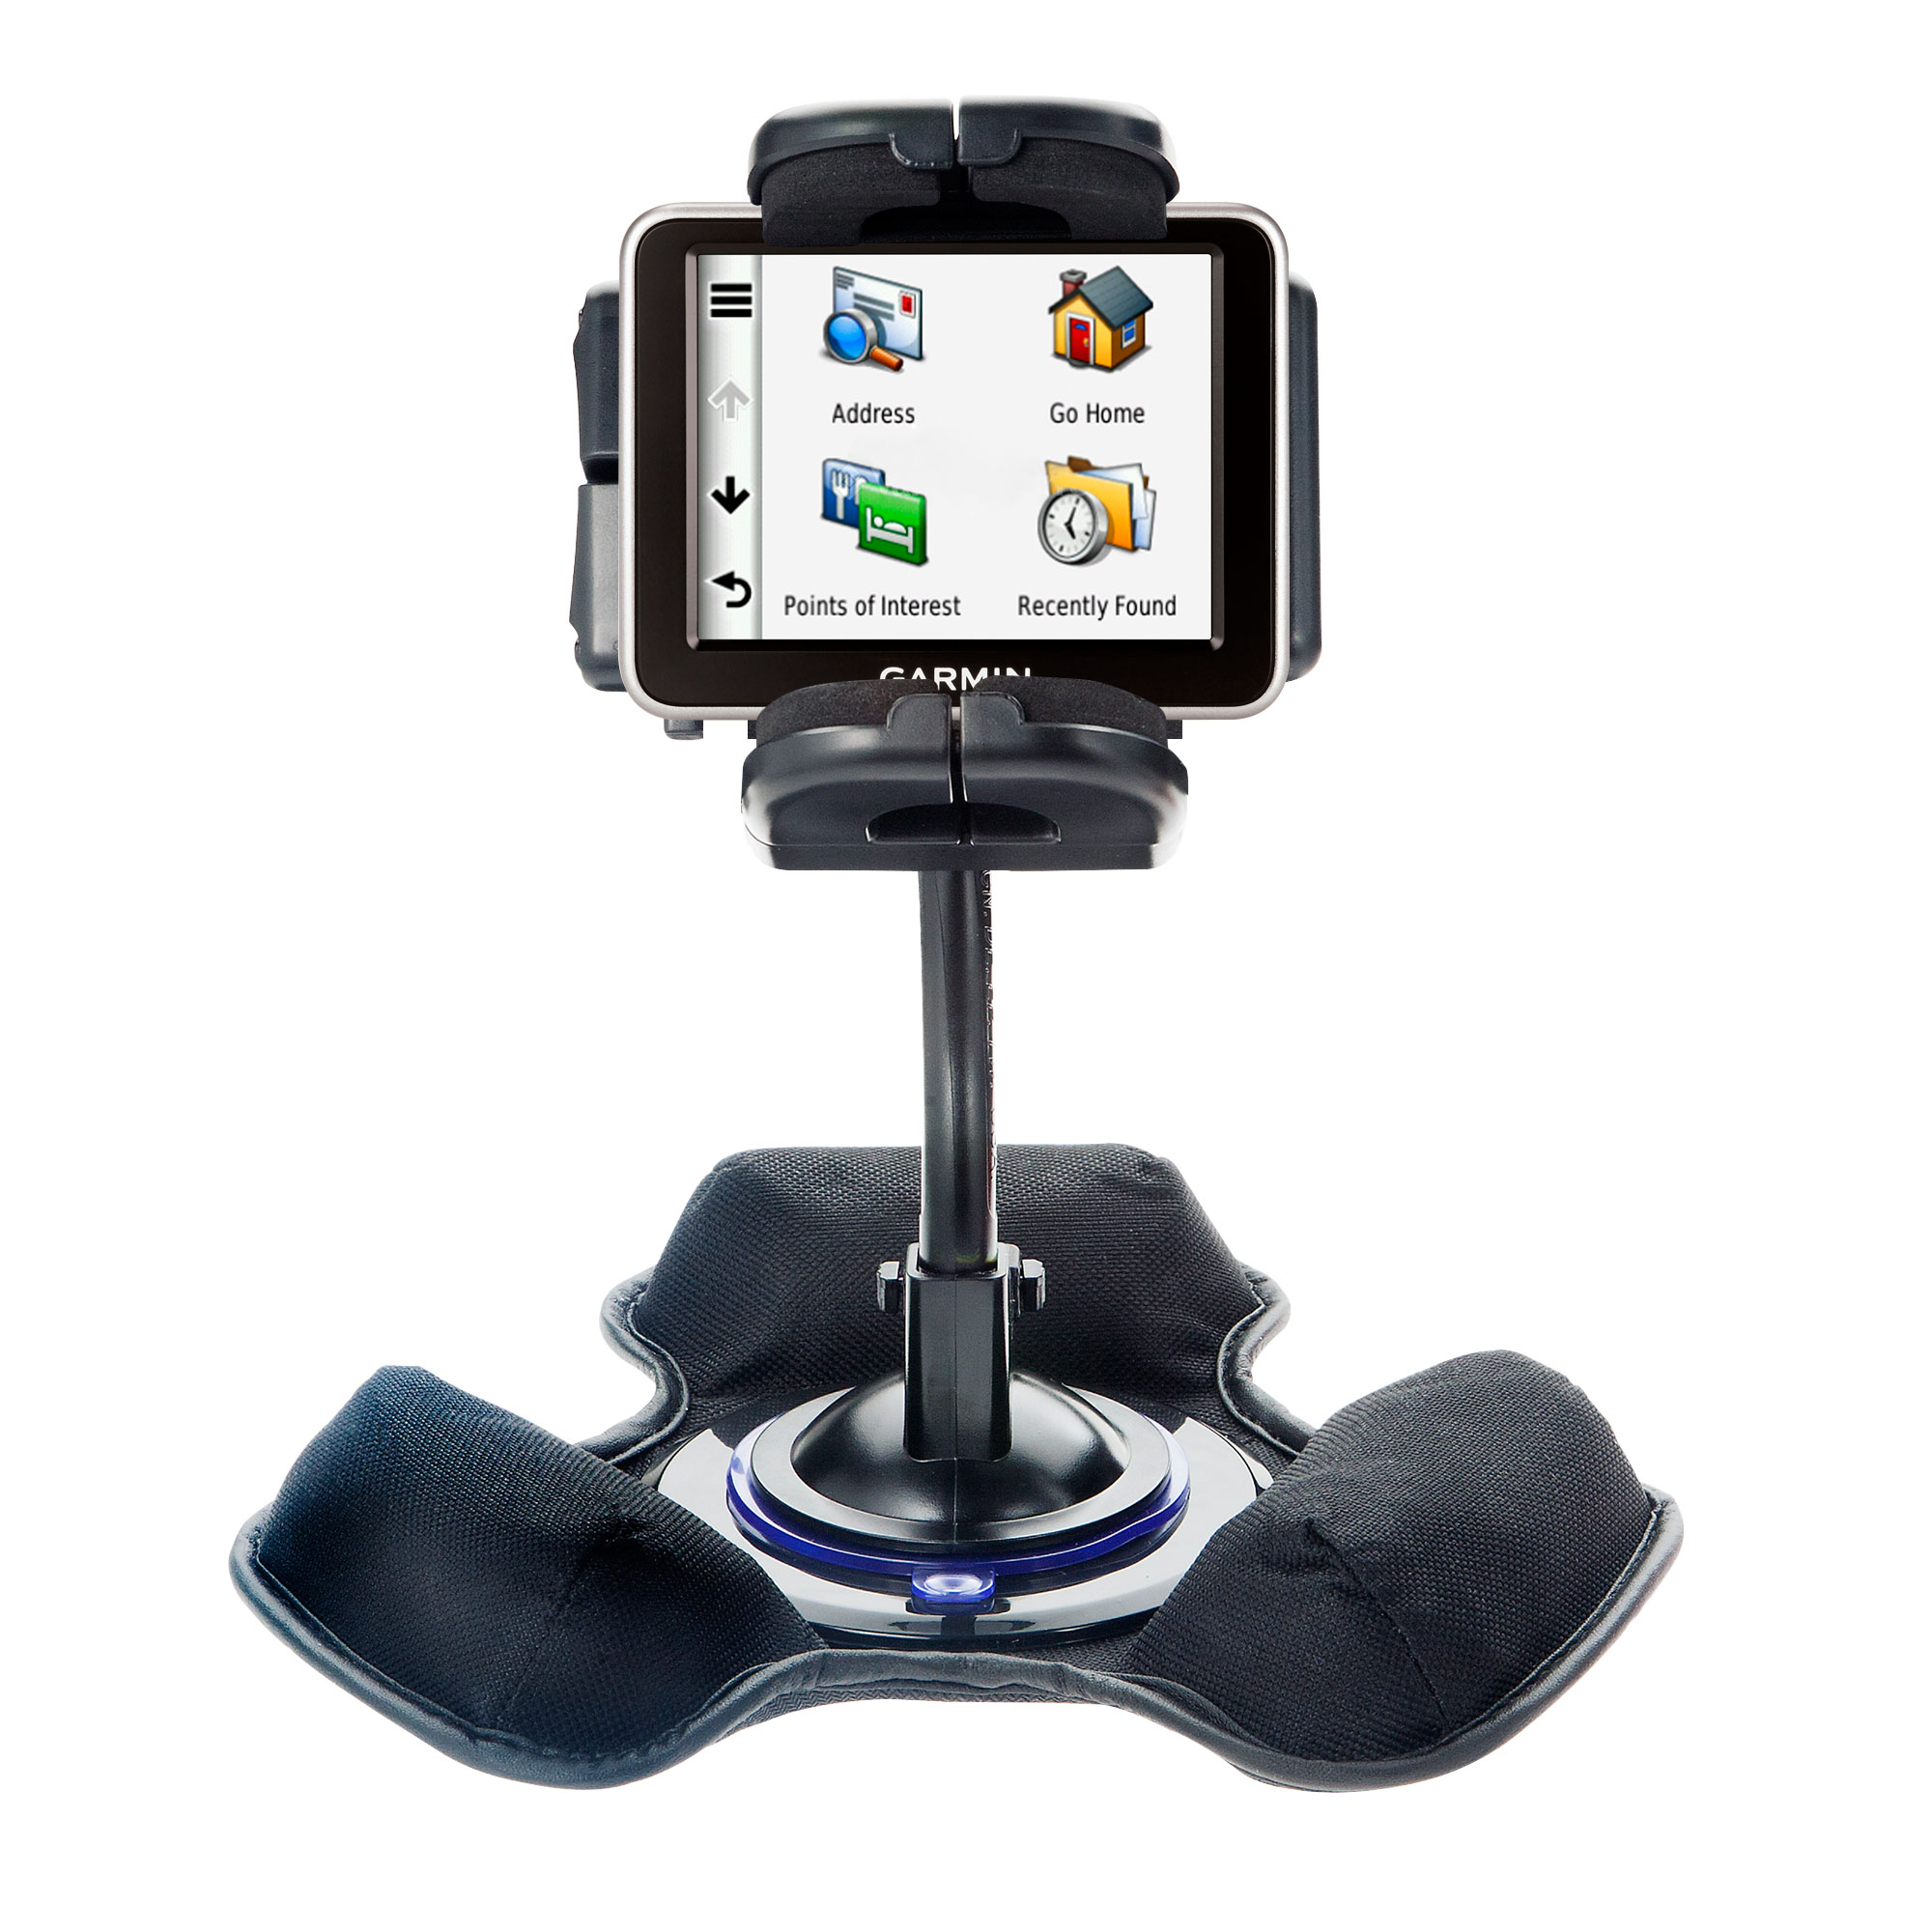 Dash and Windshield Holder compatible with the Garmin Nuvi 2250